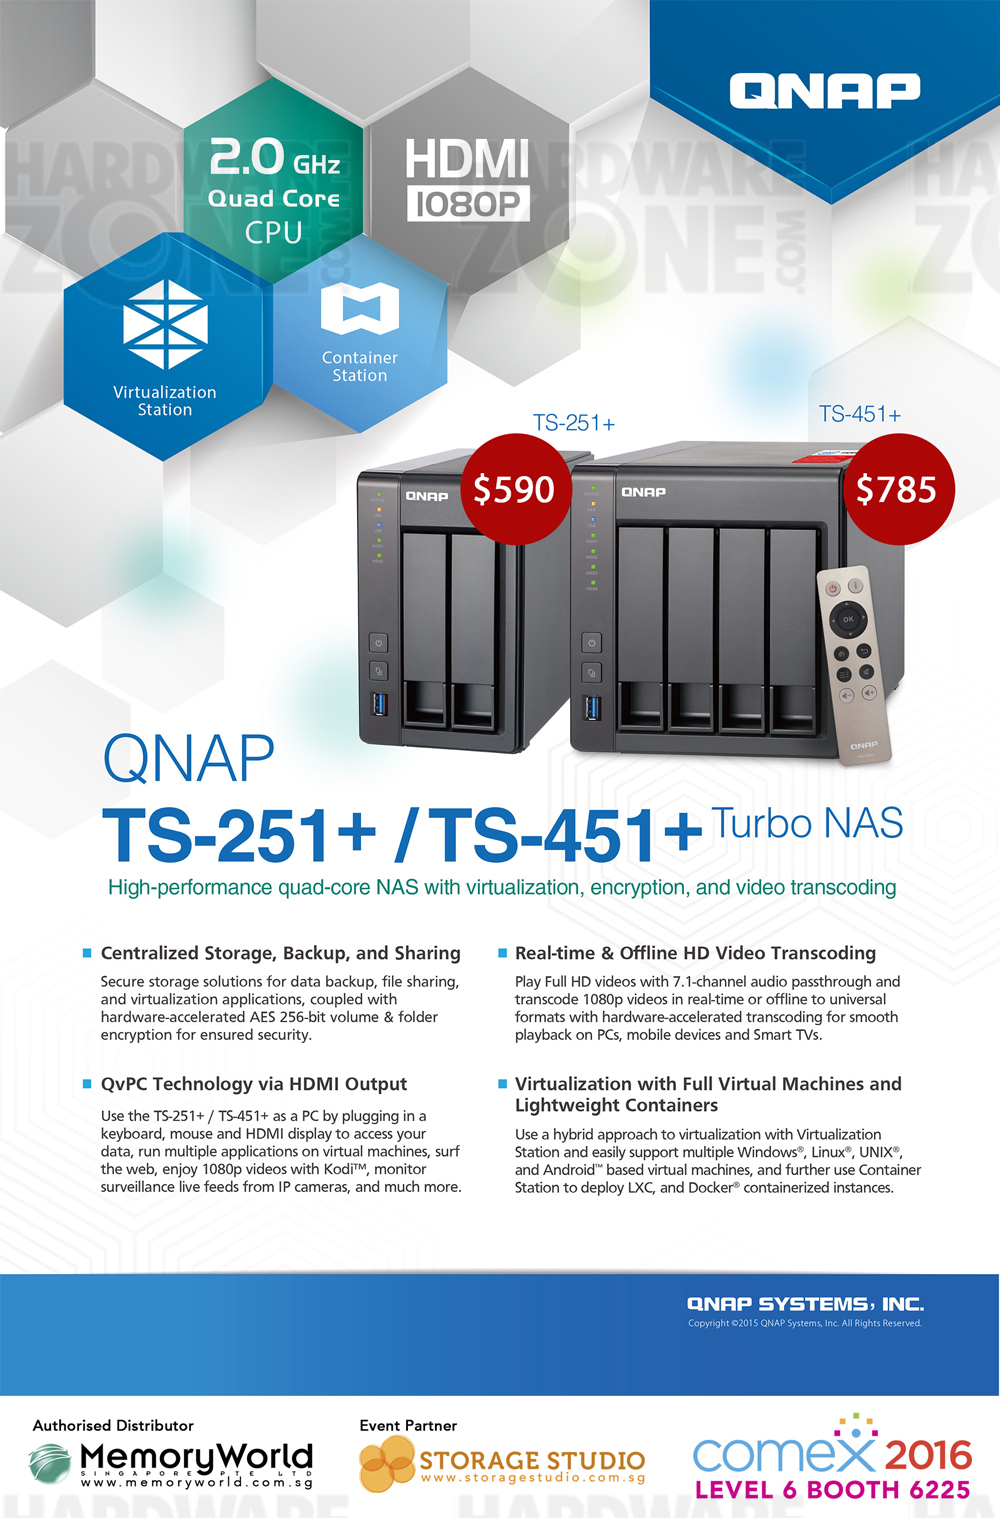 QNAP TS-251+ / 451+ Brochures from COMEX 2016 Singapore on